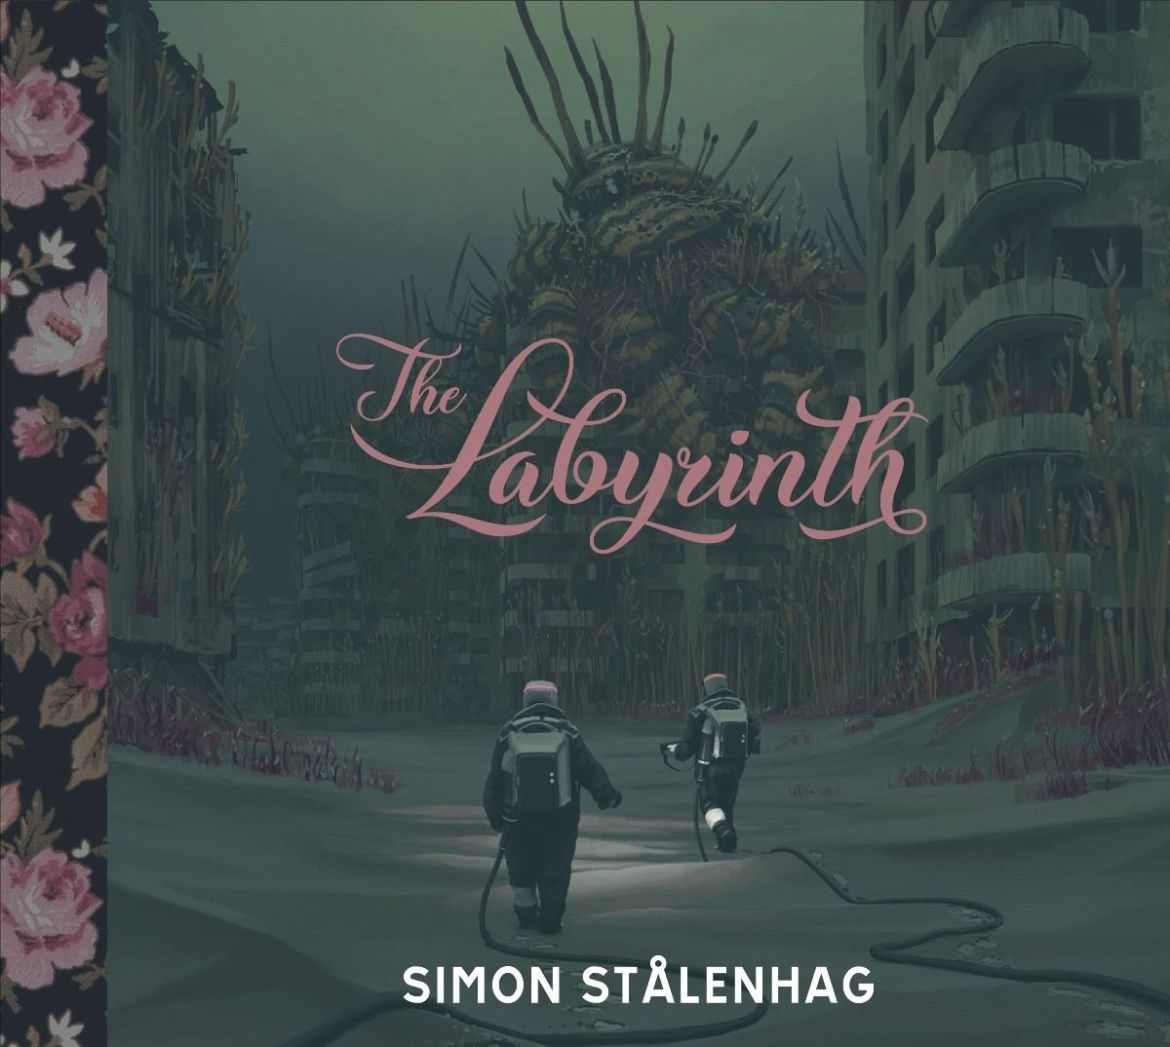 f802da2b-00a2-4664-8200-2c4636db0c81_c6815a0147f8285e3b5042ebb3626151 Simon Stålenhag's THE LABYRINTH to be published by Image/Skybound